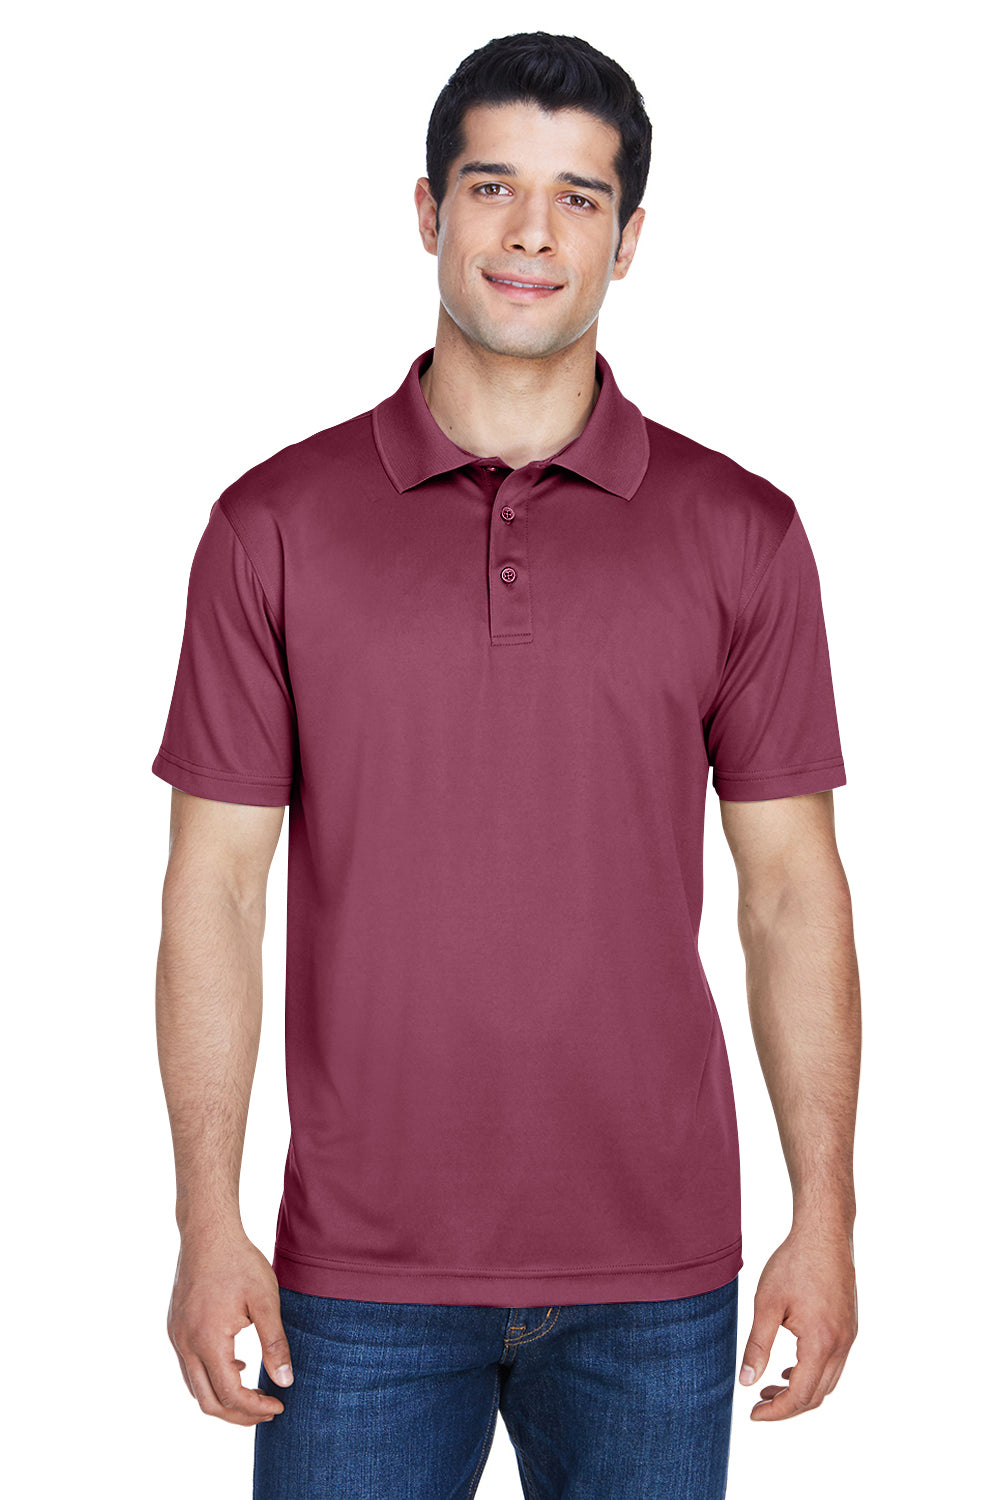 Harriton M315 Mens Polytech Moisture Wicking Short Sleeve Polo Shirt Maroon Front